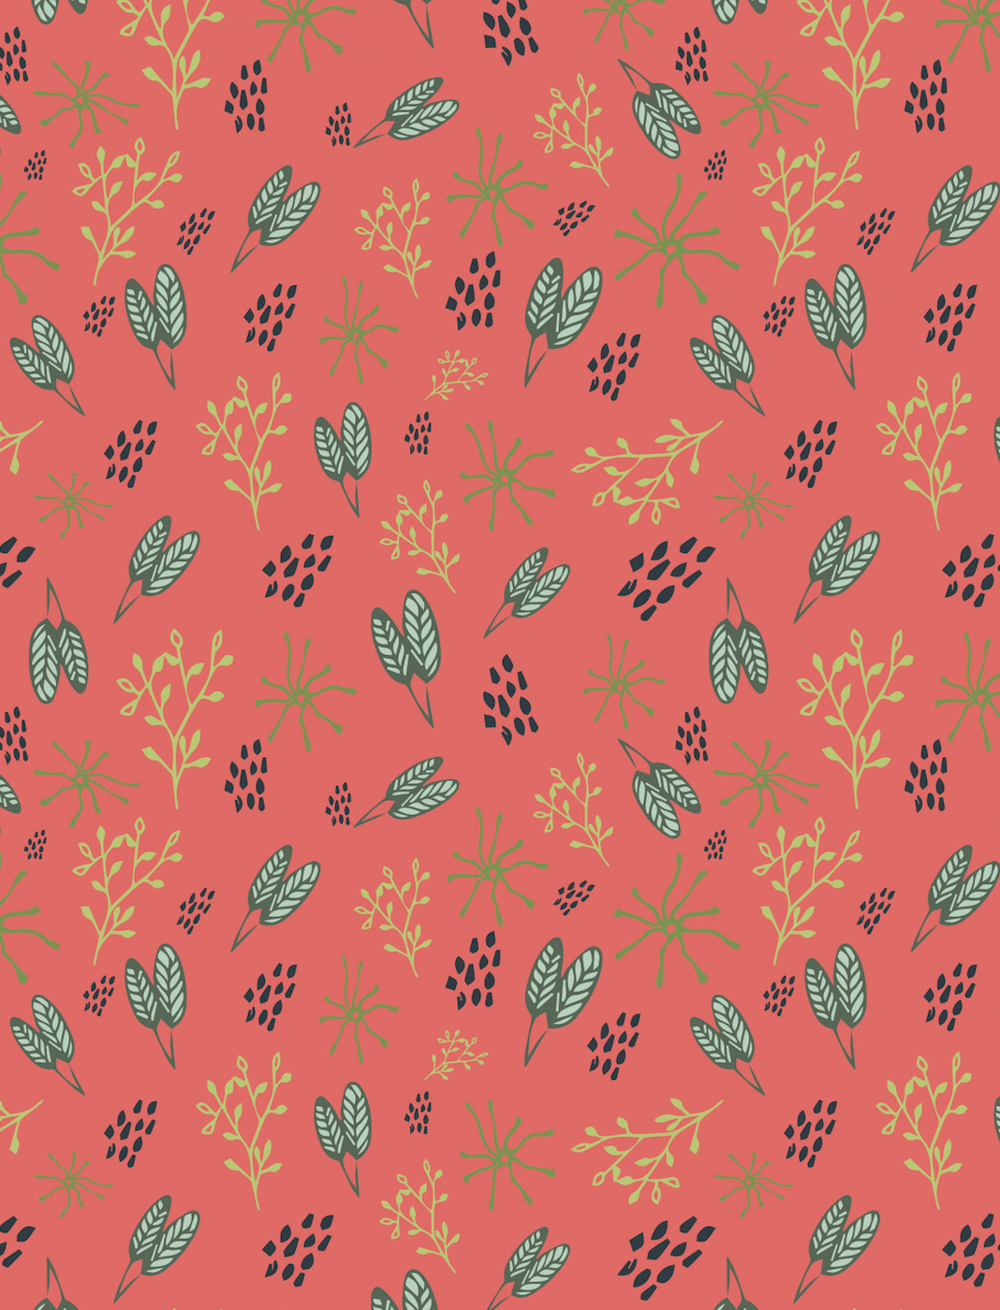 Surface Pattern Design 1 - image 6 - student project